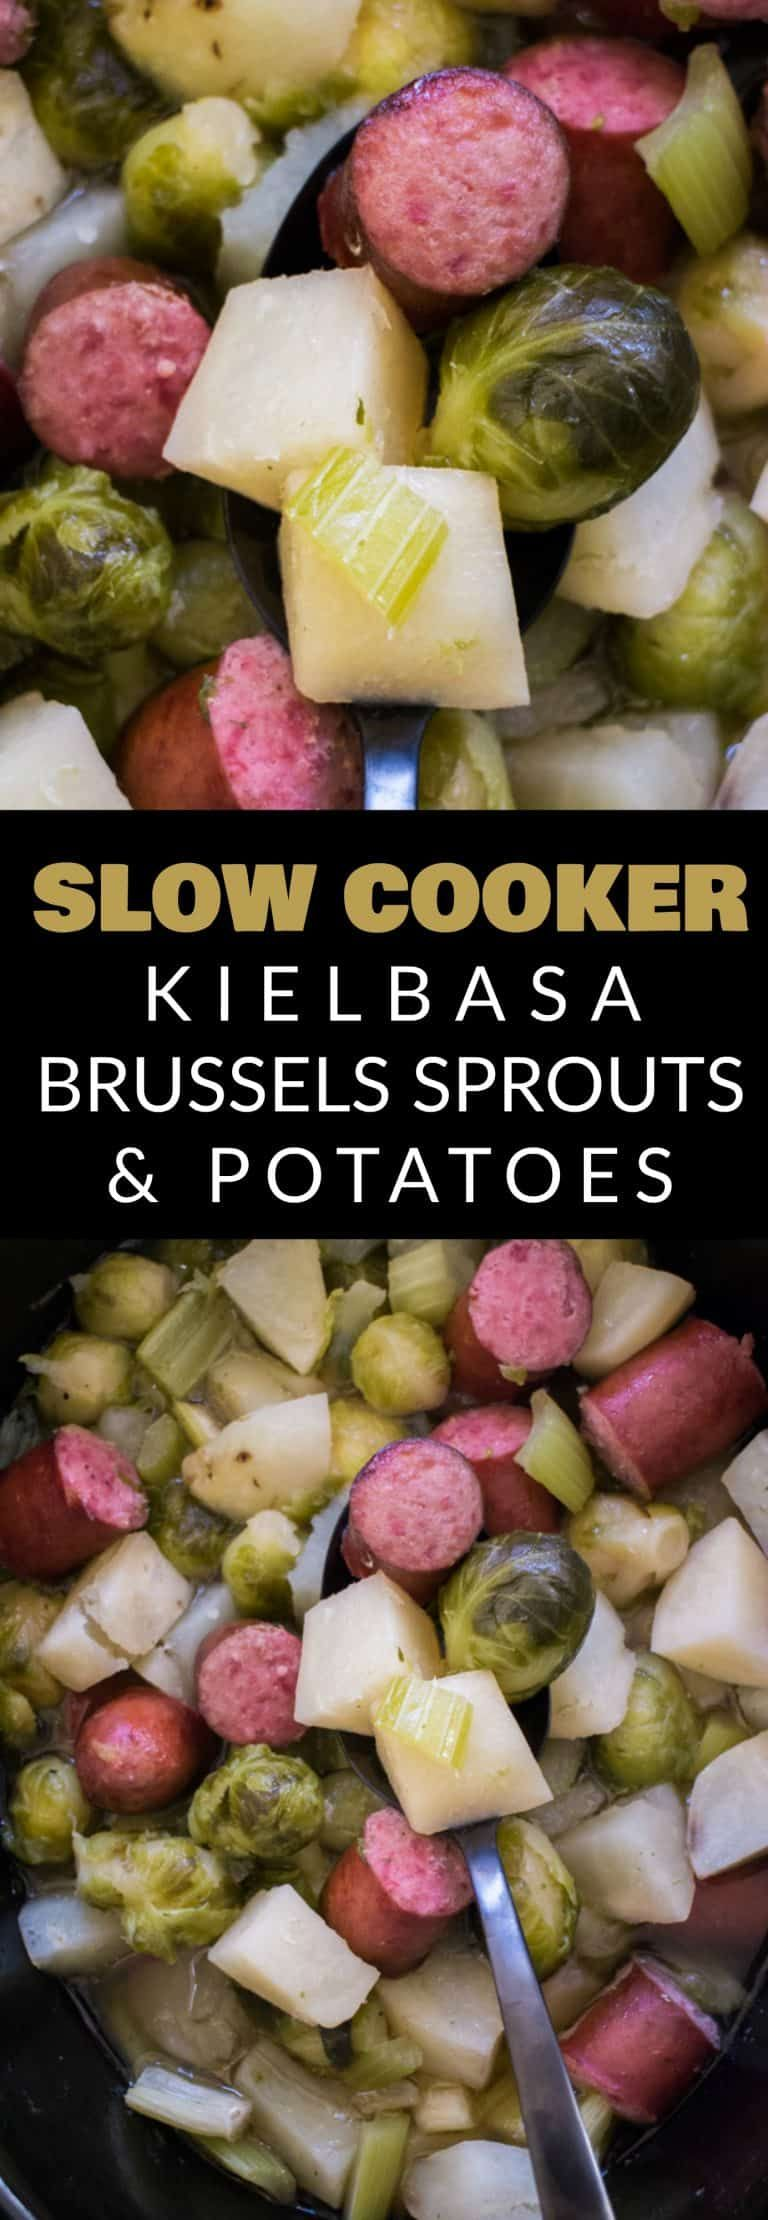 Slow Cooker Kielbasa, Brussels Sprouts and Potatoes #ricecookermeals